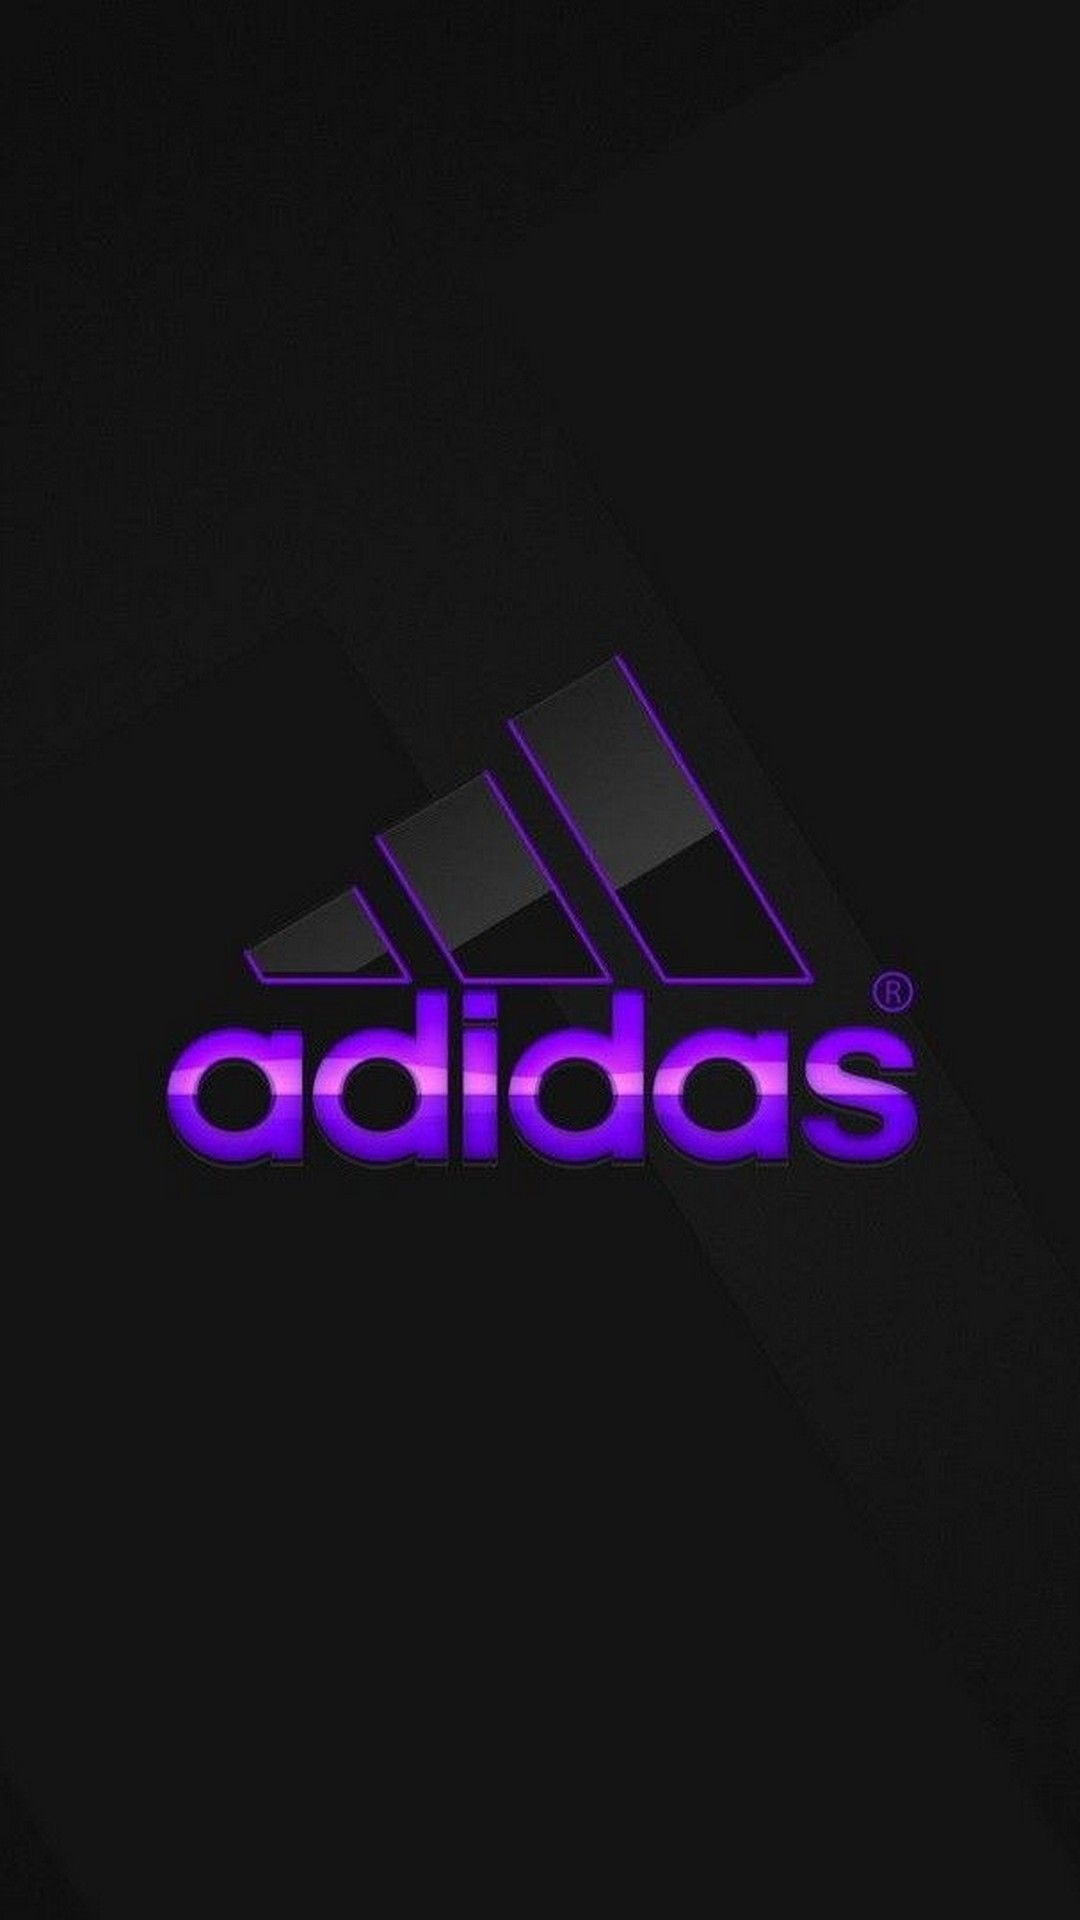 1080x1920 Android Wallpaper Adidas - 2019 Android Wallpapers